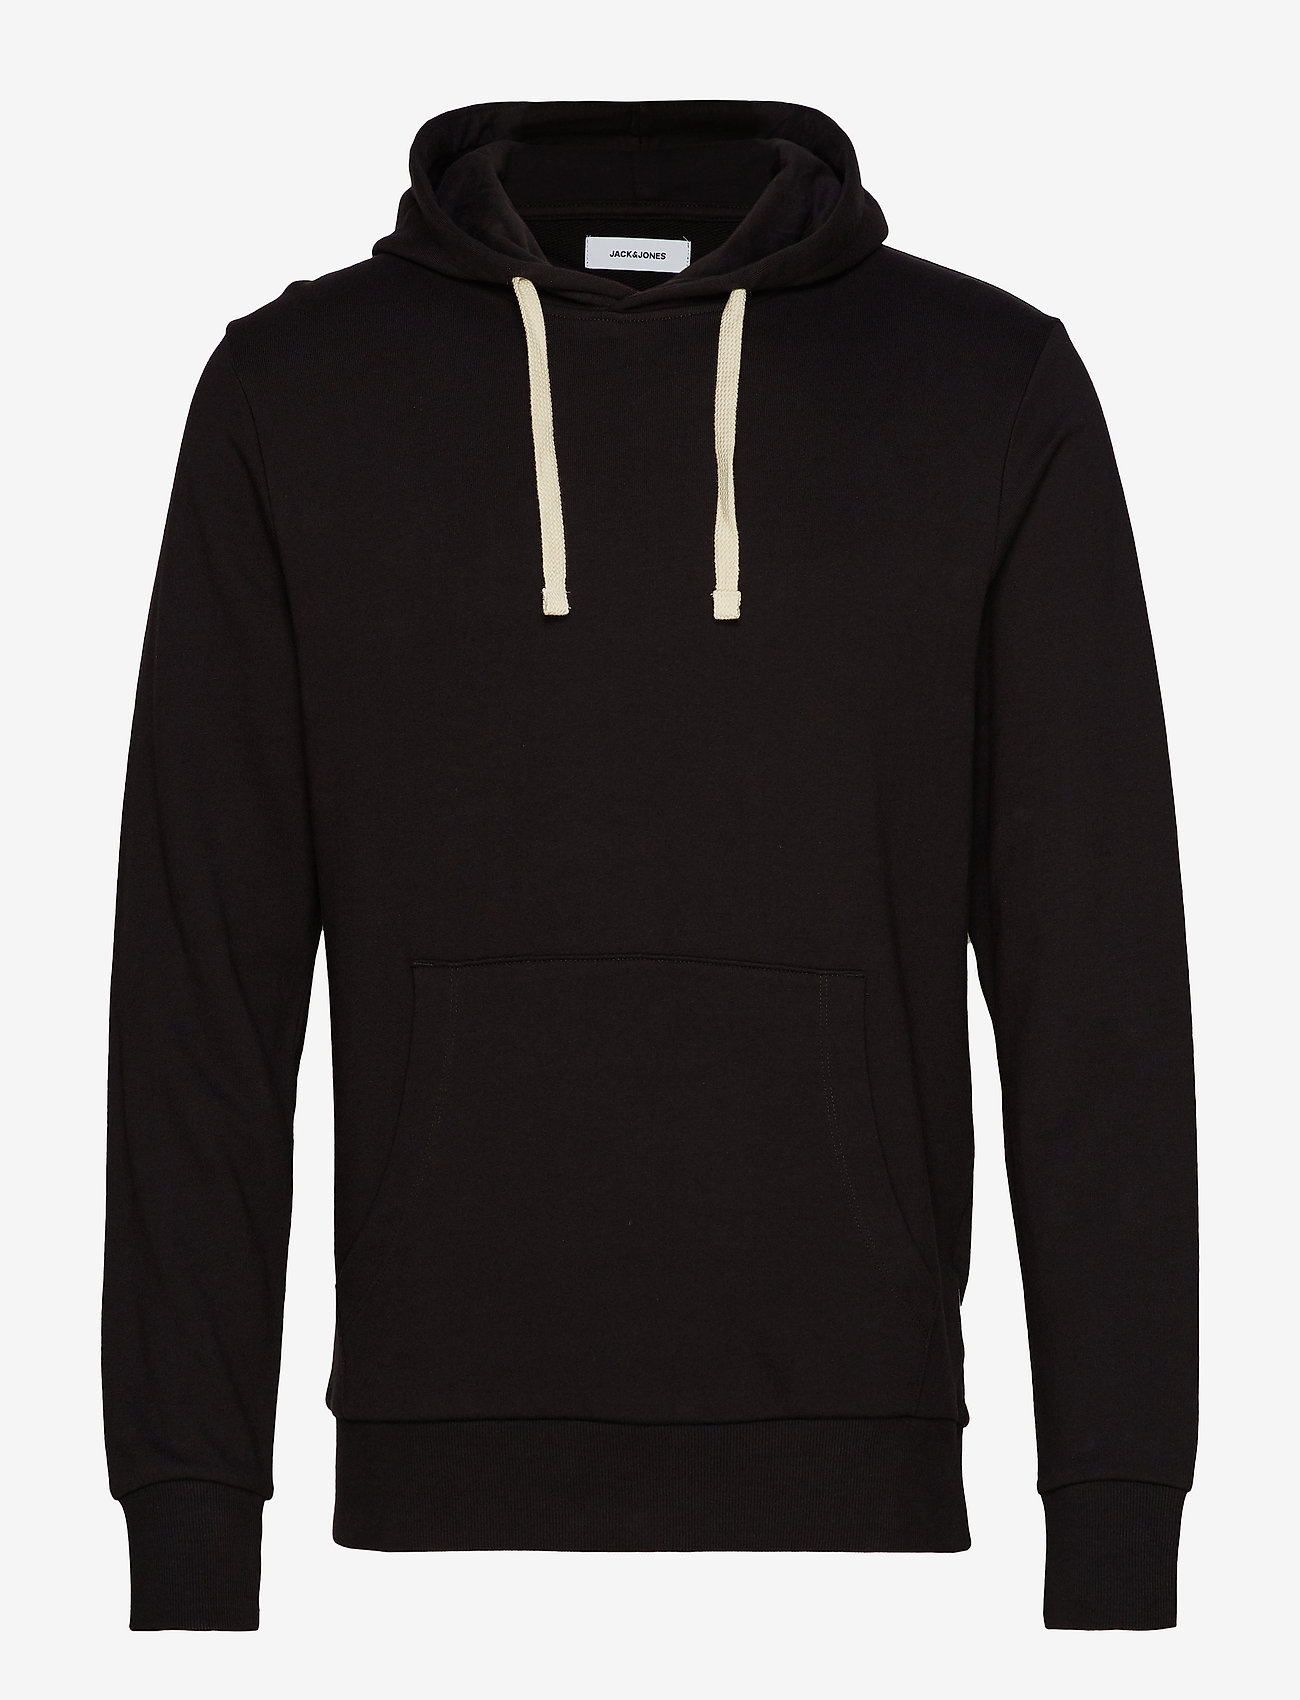 Jack & Jones - JJEHOLMEN SWEAT HOOD NOOS - basic sweatshirts - black - 0